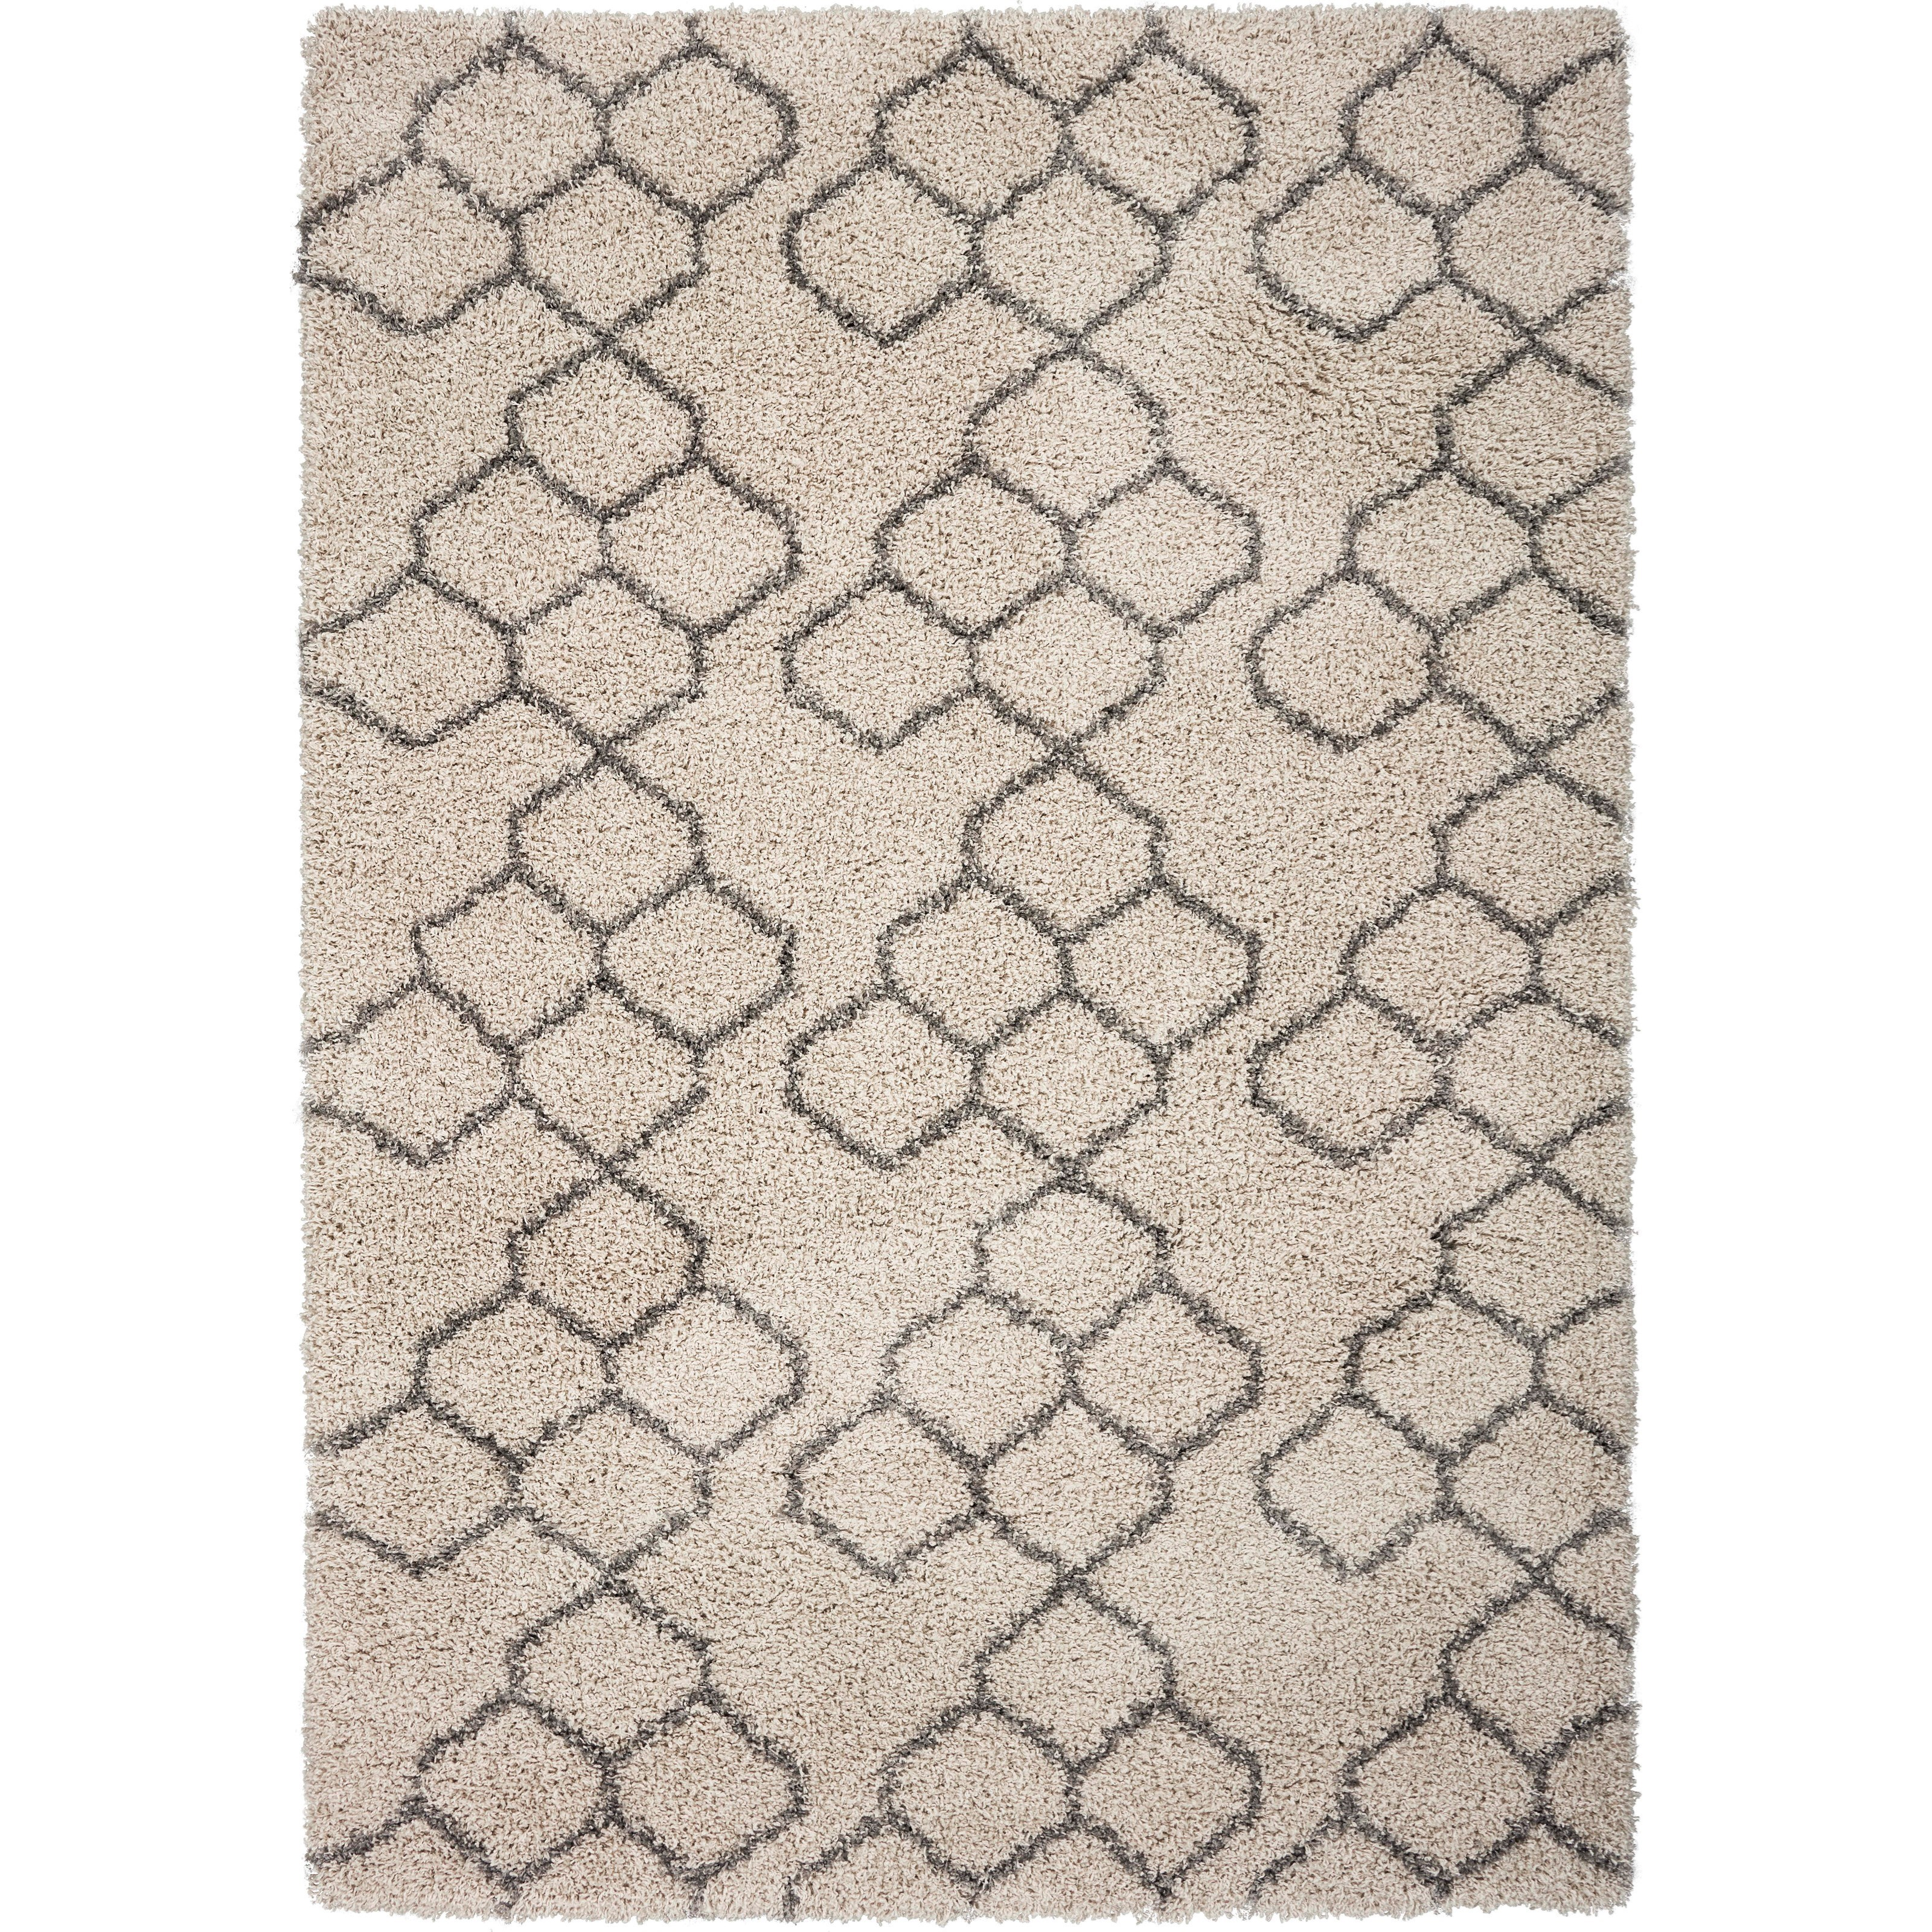 """Prima 5'3"""" x 7'7"""" Natural Honeycomb Rug by Kas at Zak's Home"""